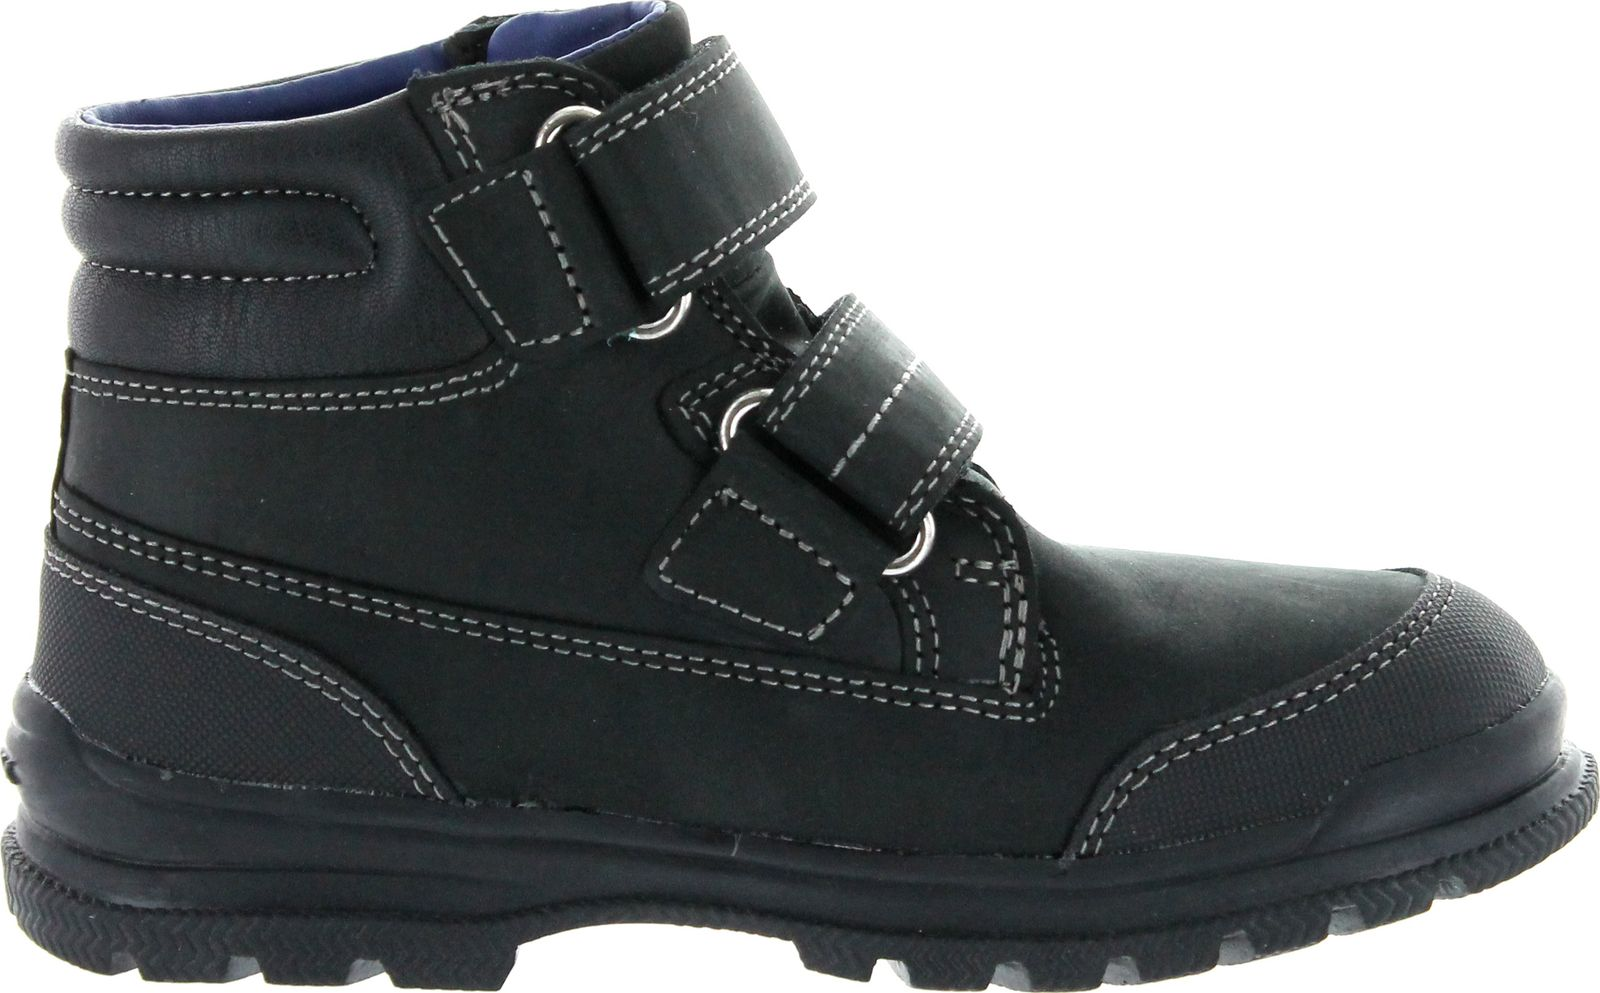 Boys Shoes» Girls' New Arrivals Cold Weather Boots (36) Lace Up Boots (44) Mid-Calf Boots (64) Motorcycle Boots (4) Slip On Boots (62) Zip-Up Boots (37) Brand: BOBS (15) Cali (3) Women's Skechers On the GO Joy - Winter Snow. $ 2 Colors. Women's Skechers On the GO Joy - Winter Snow. $ 2 Colors.